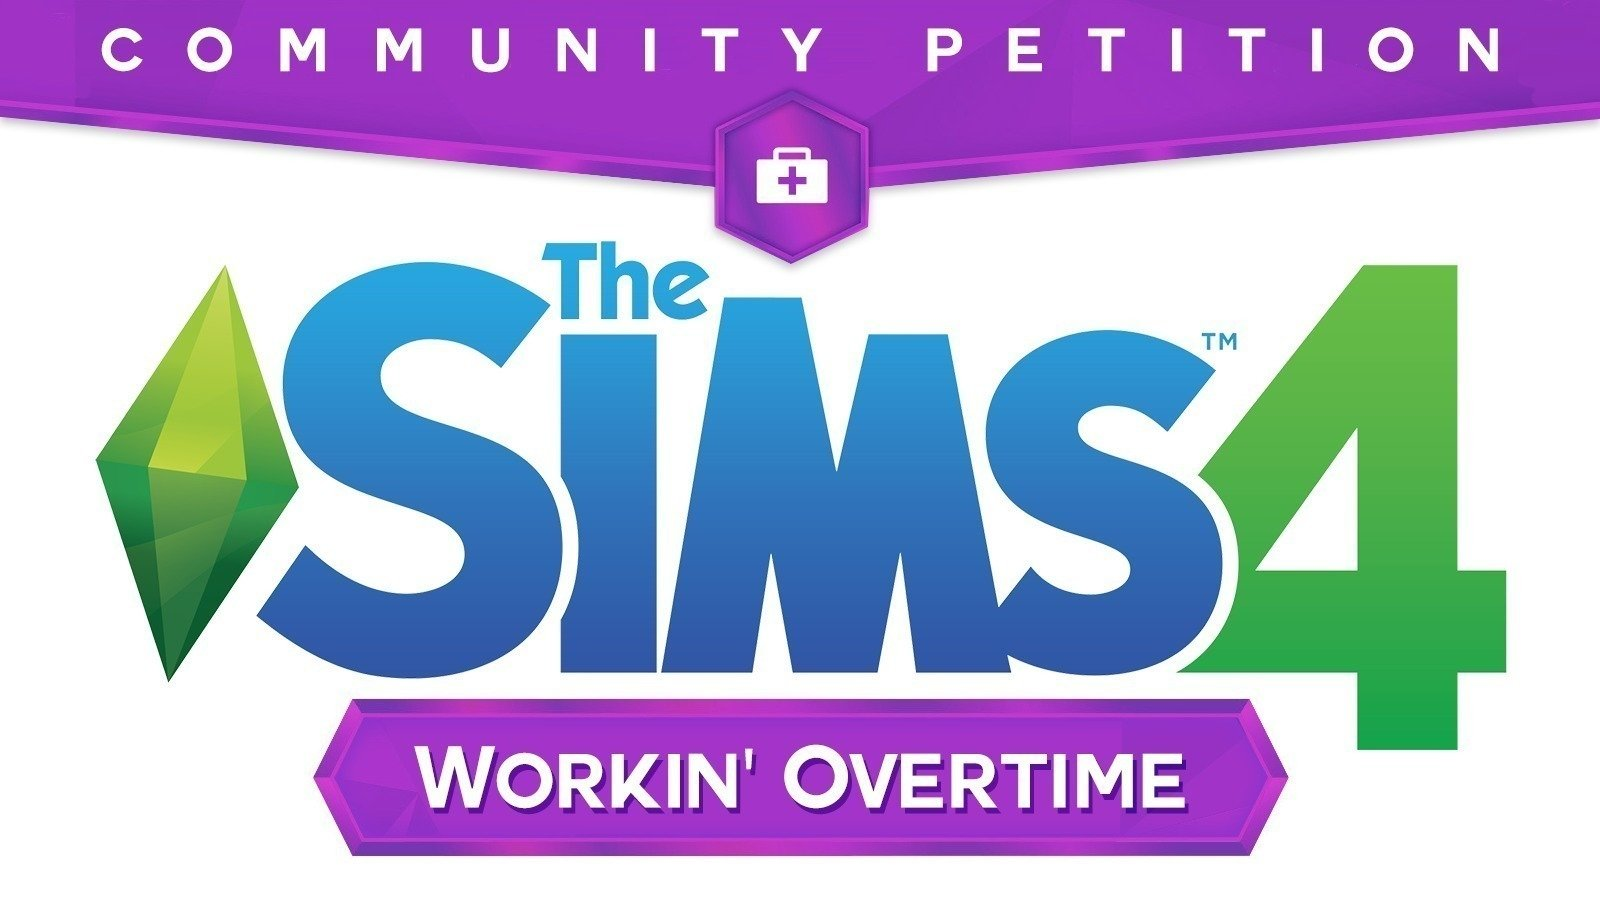 Petition · Electronic Arts, The Sims 4 Team: Make all of the original The Sims 4 careers perform